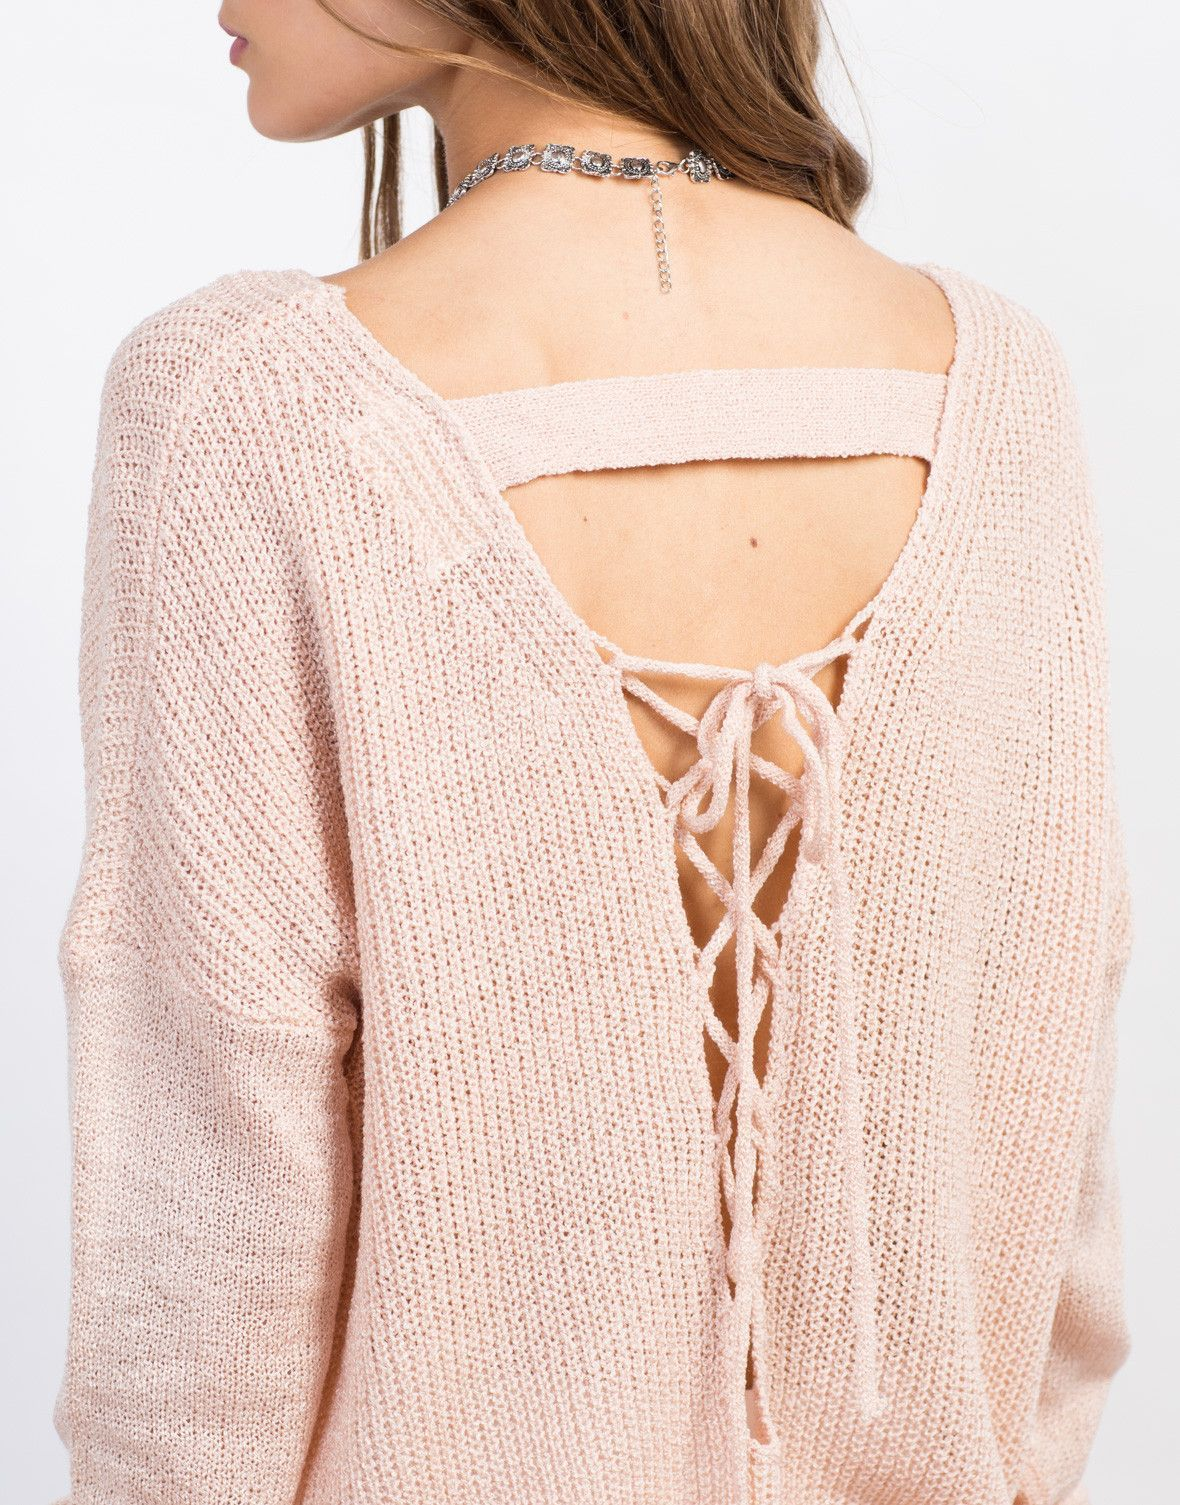 a704396da3 Stay cool this season in the Lace-Up Back Knit Sweater! Pair this knit